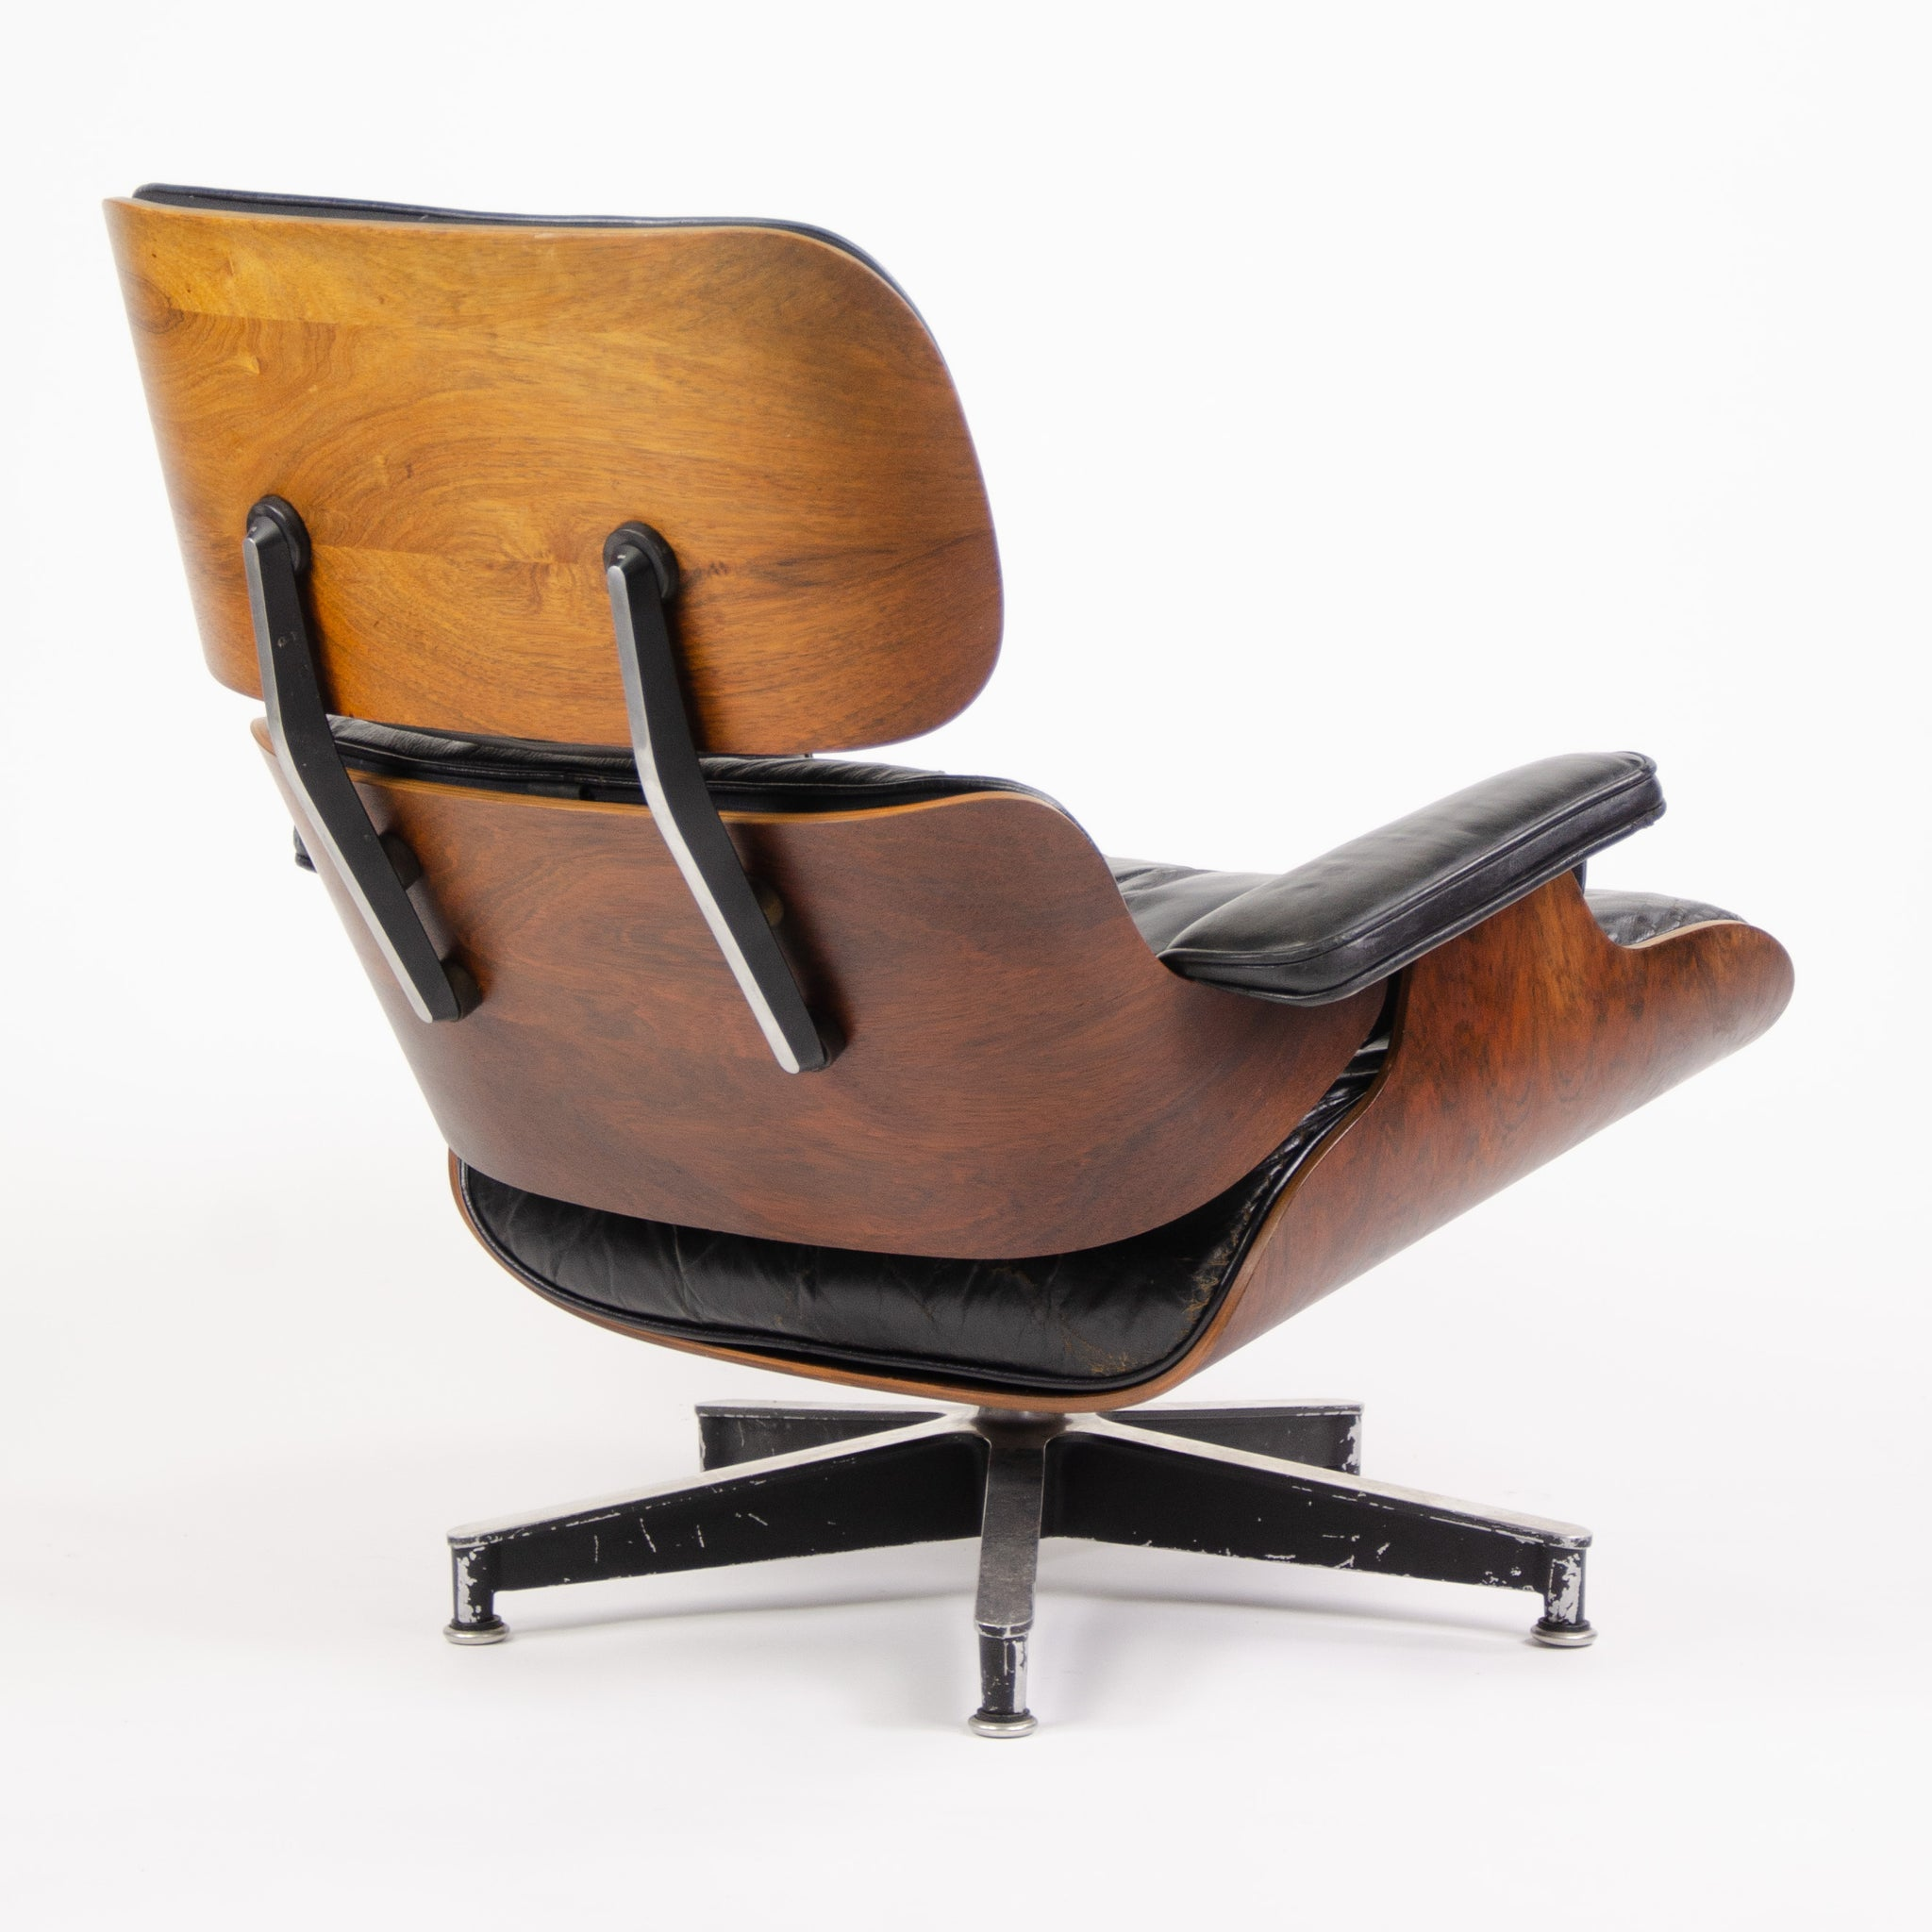 1956 Holy Grail Herman Miller Eames Lounge Chair w Swivel Ottoman Boots + 3 Hole